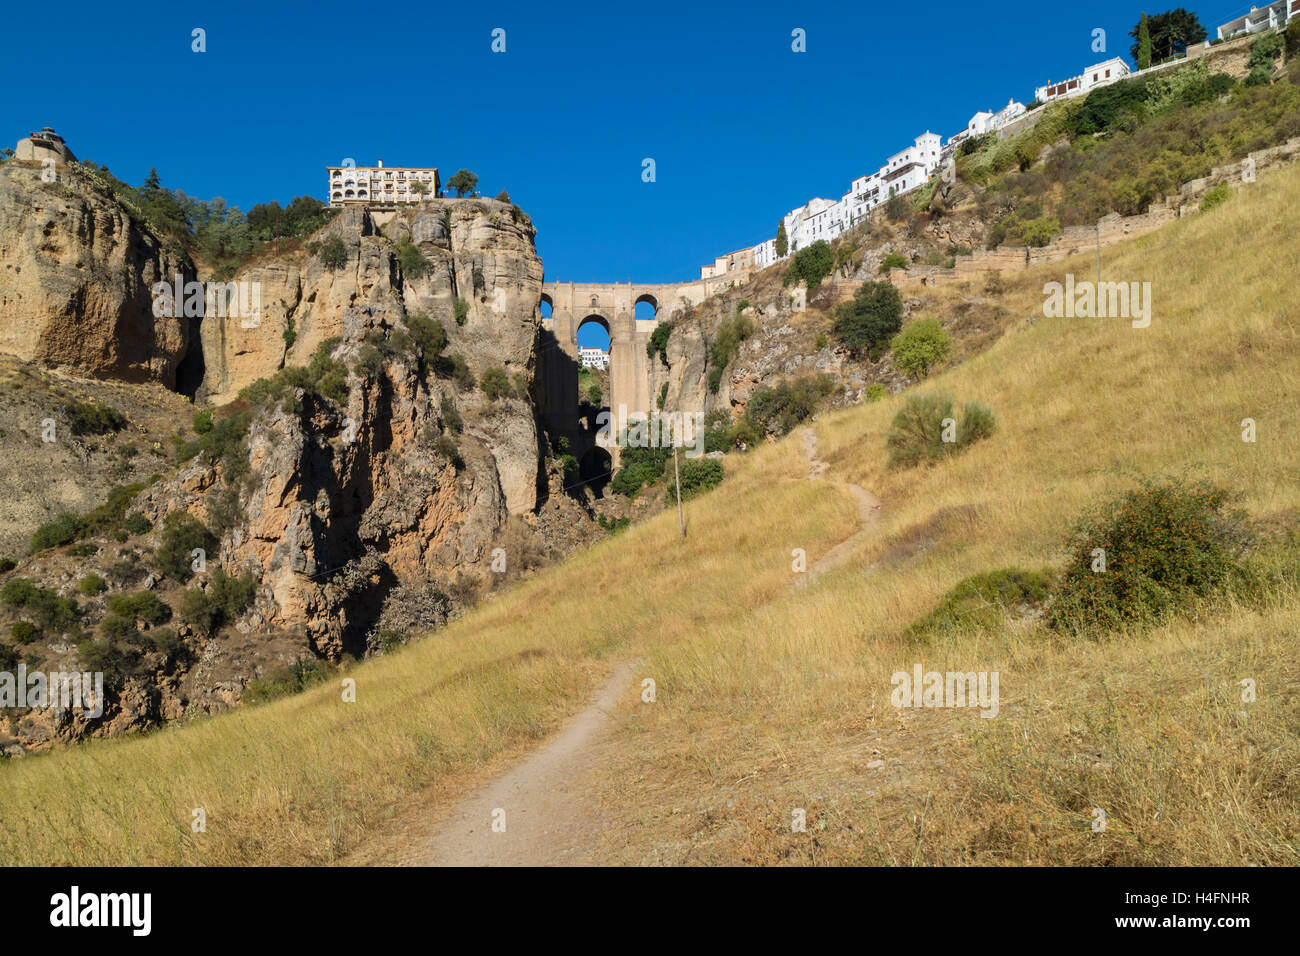 Ronda, Malaga Province, Andalusia, southern Spain.  The town on both sides of the El Tajo gorge, seen from below. - Stock Image